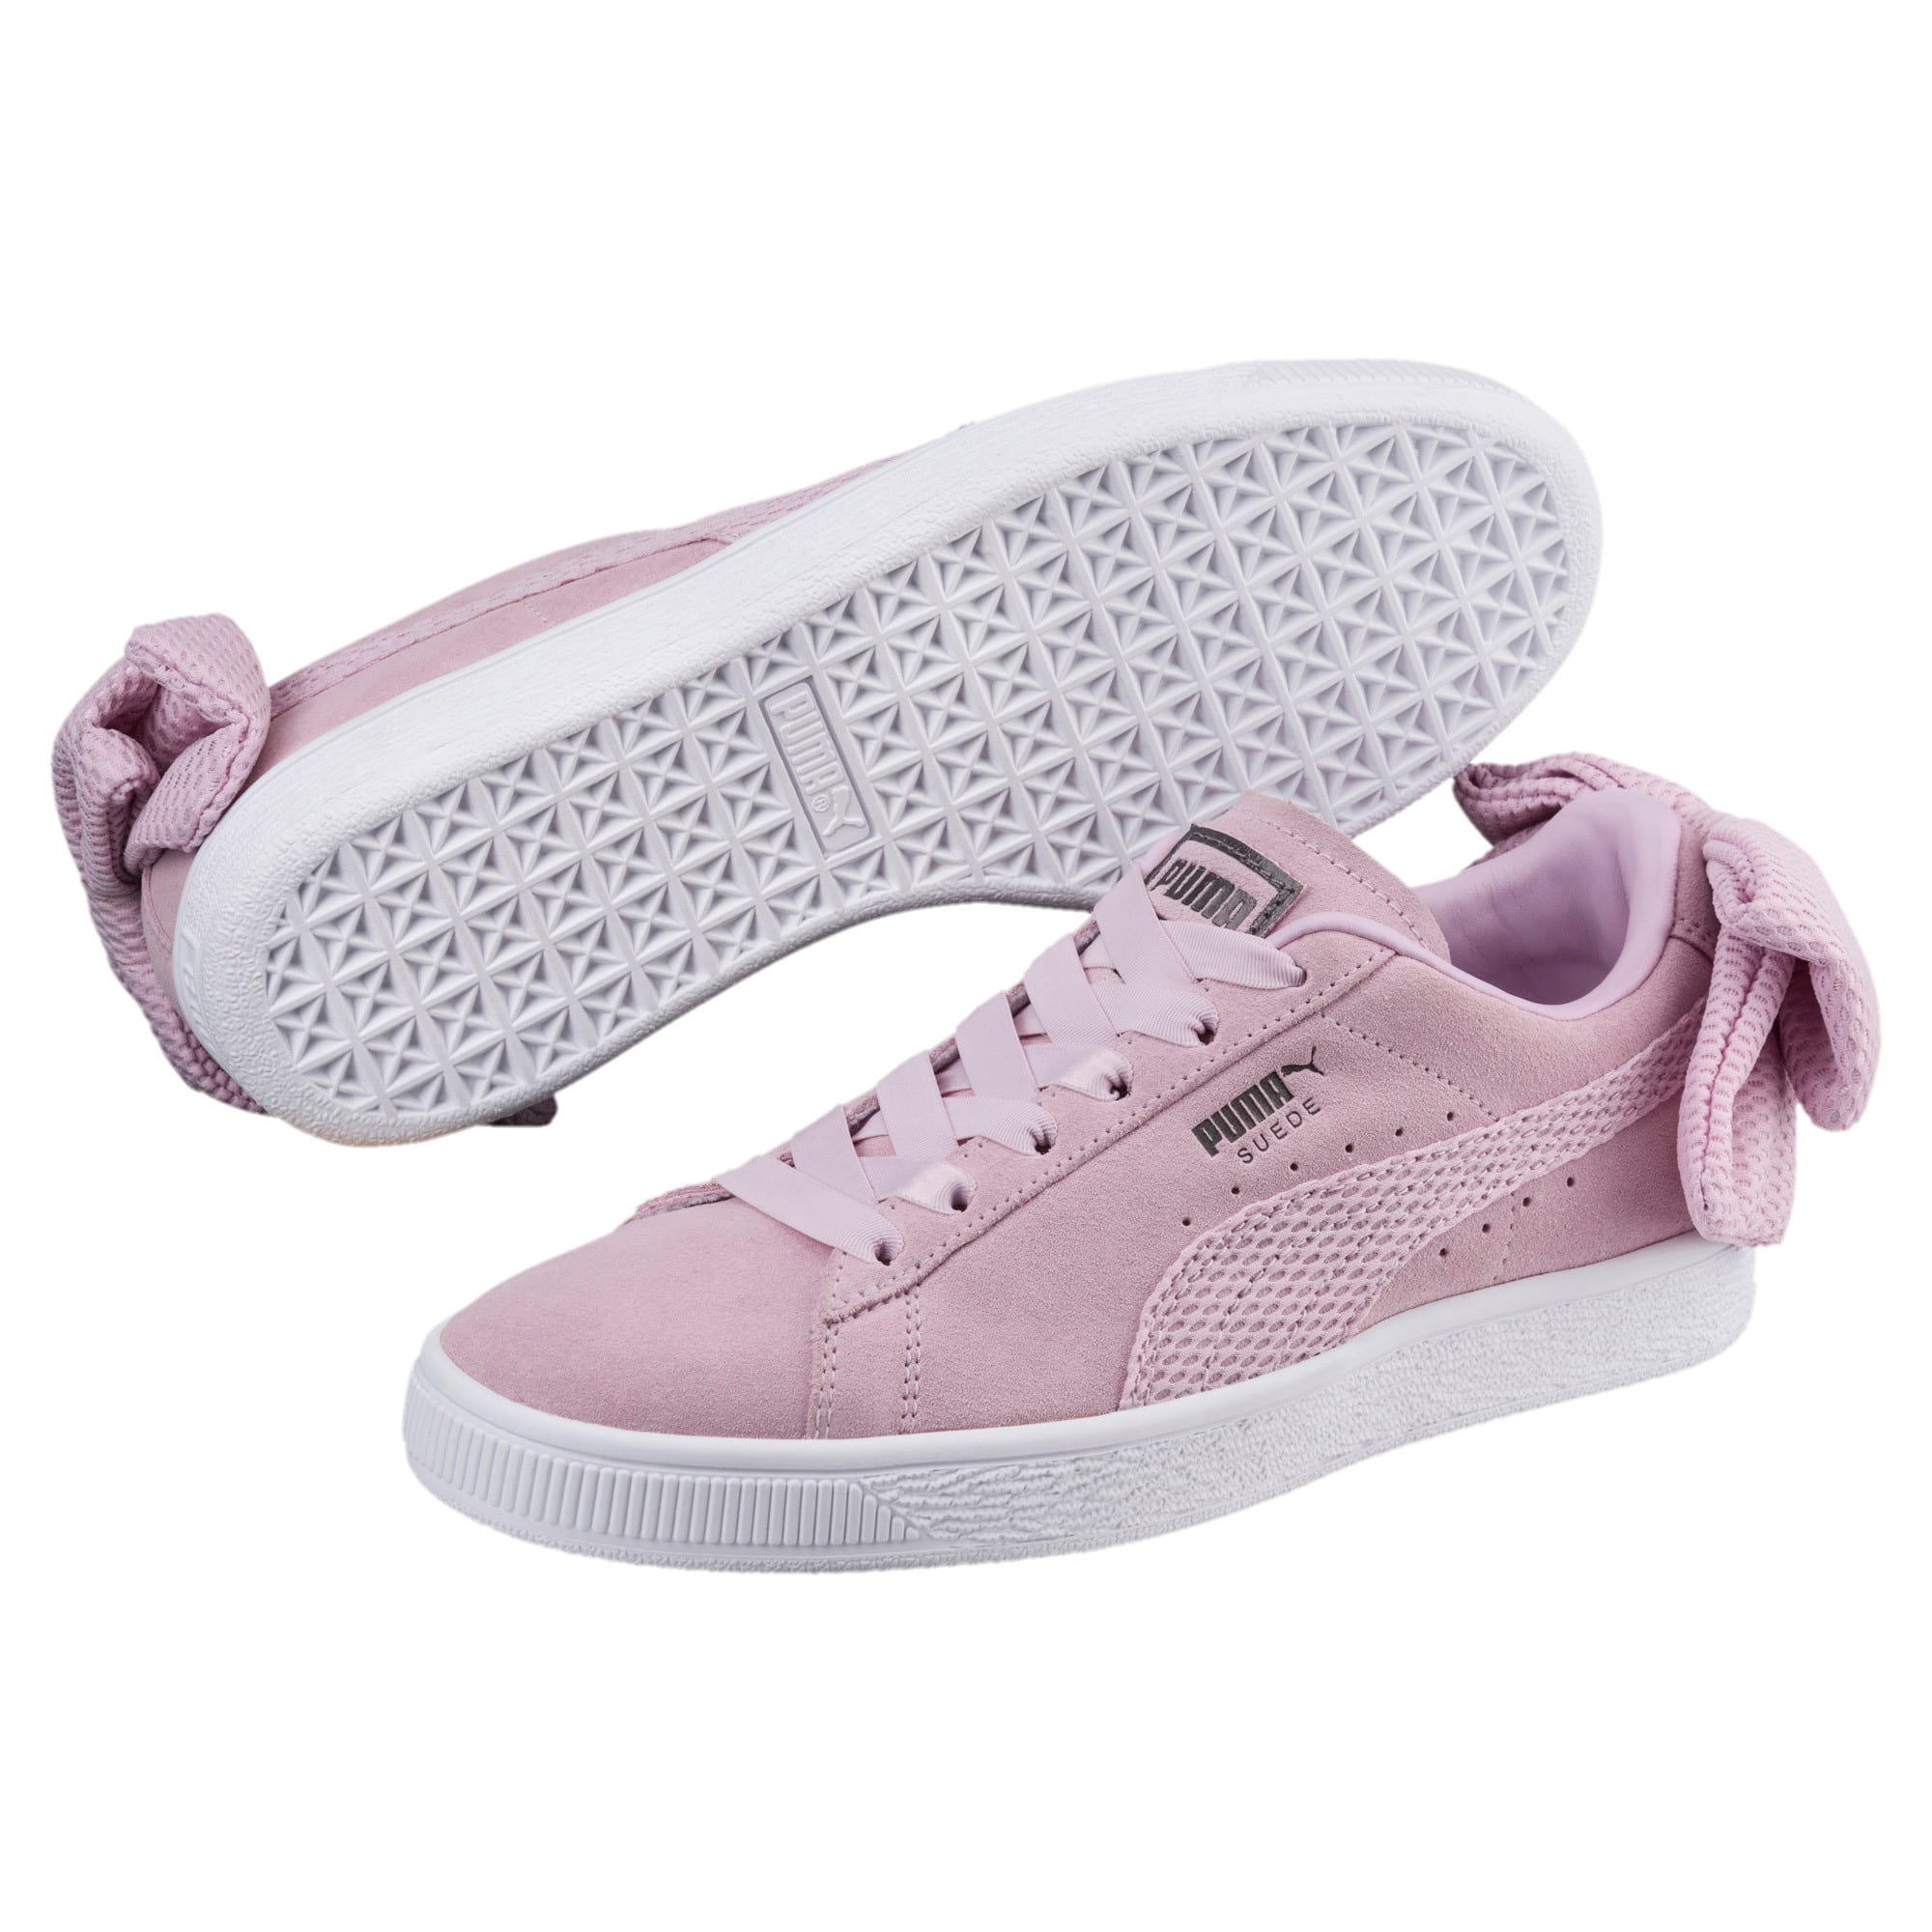 Thumbnail 2 of Suede Bow Uprising Women's Sneakers, Winsome Orchid-Puma White, medium